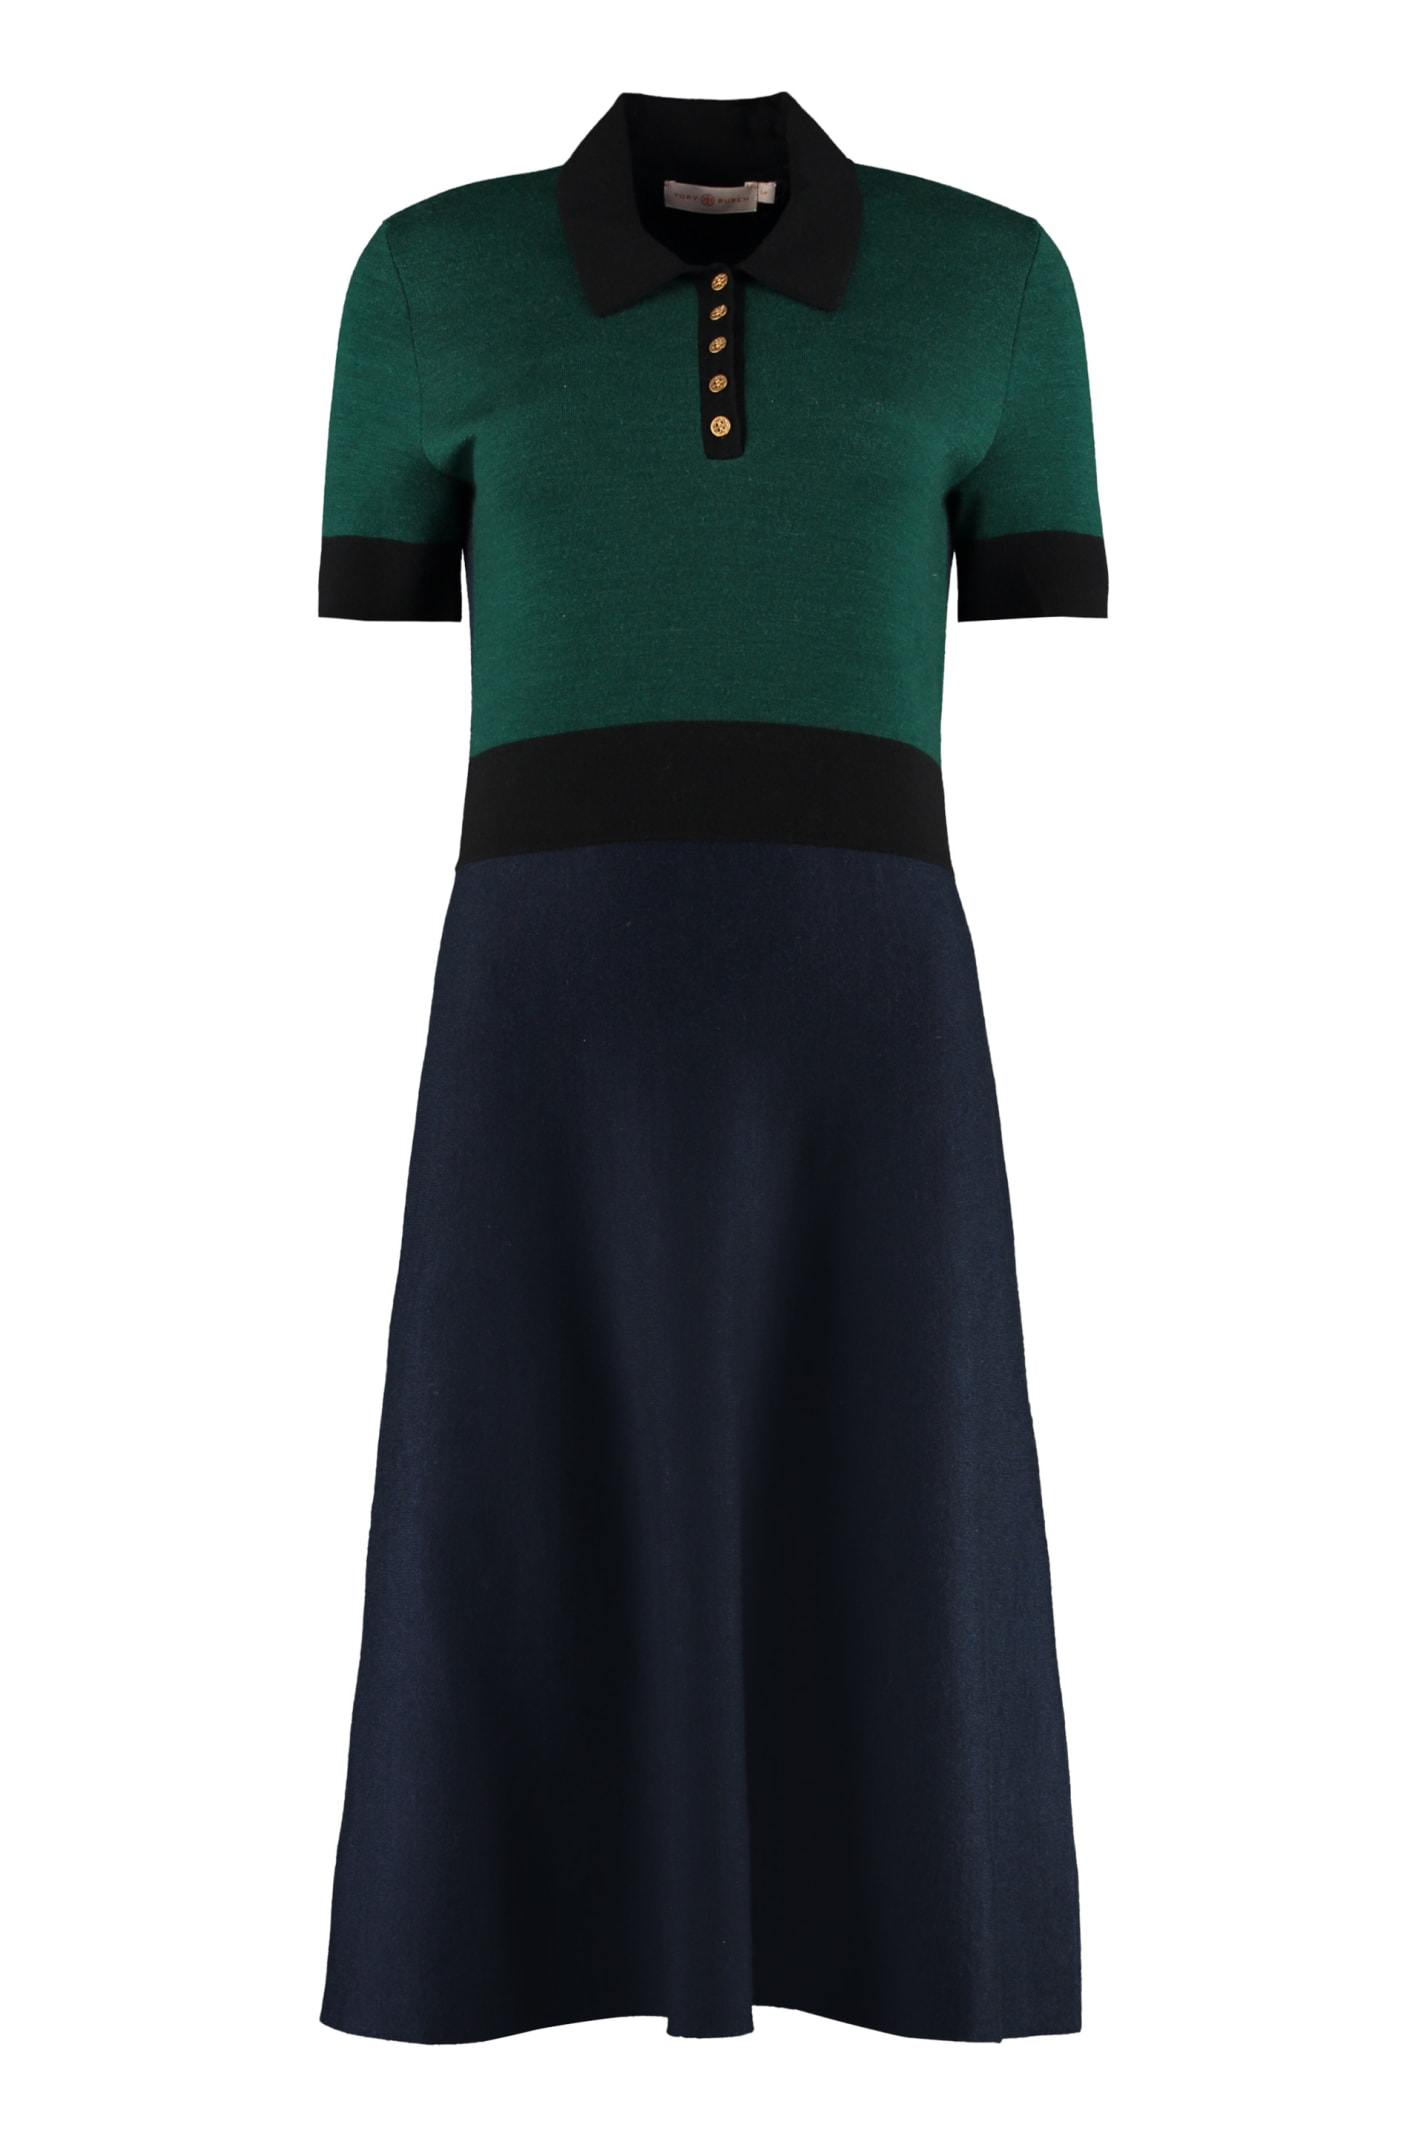 Buy Tory Burch Color-block Sweater Dress online, shop Tory Burch with free shipping